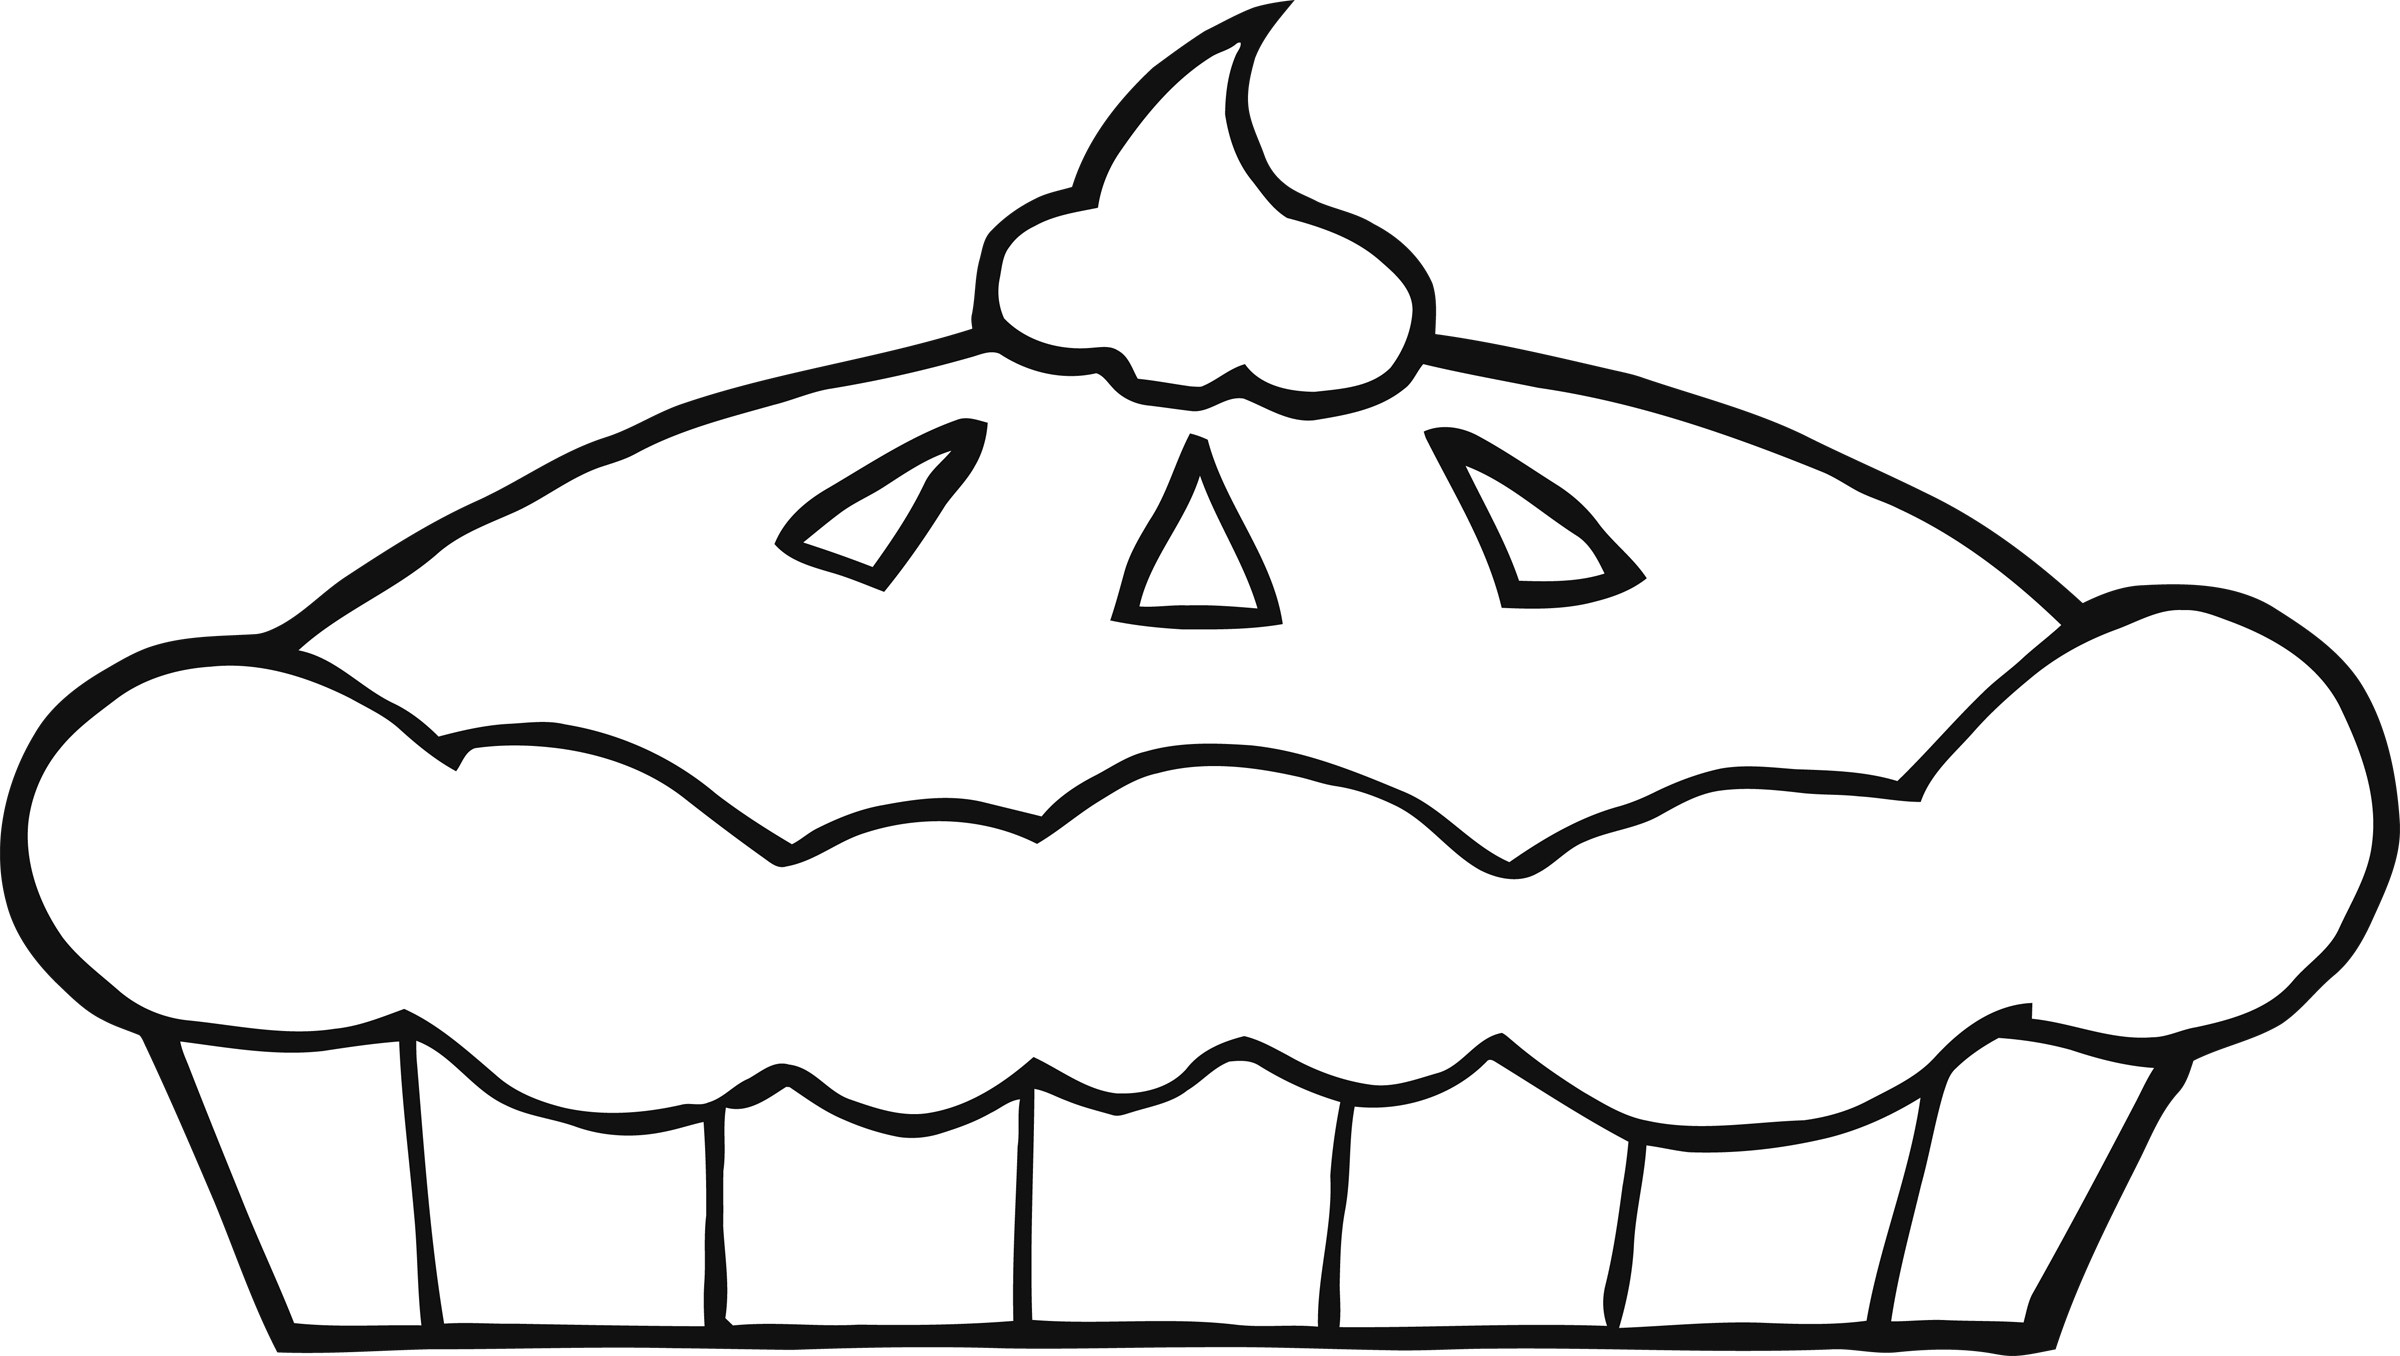 Pie clipart coloring page. Free download clip art